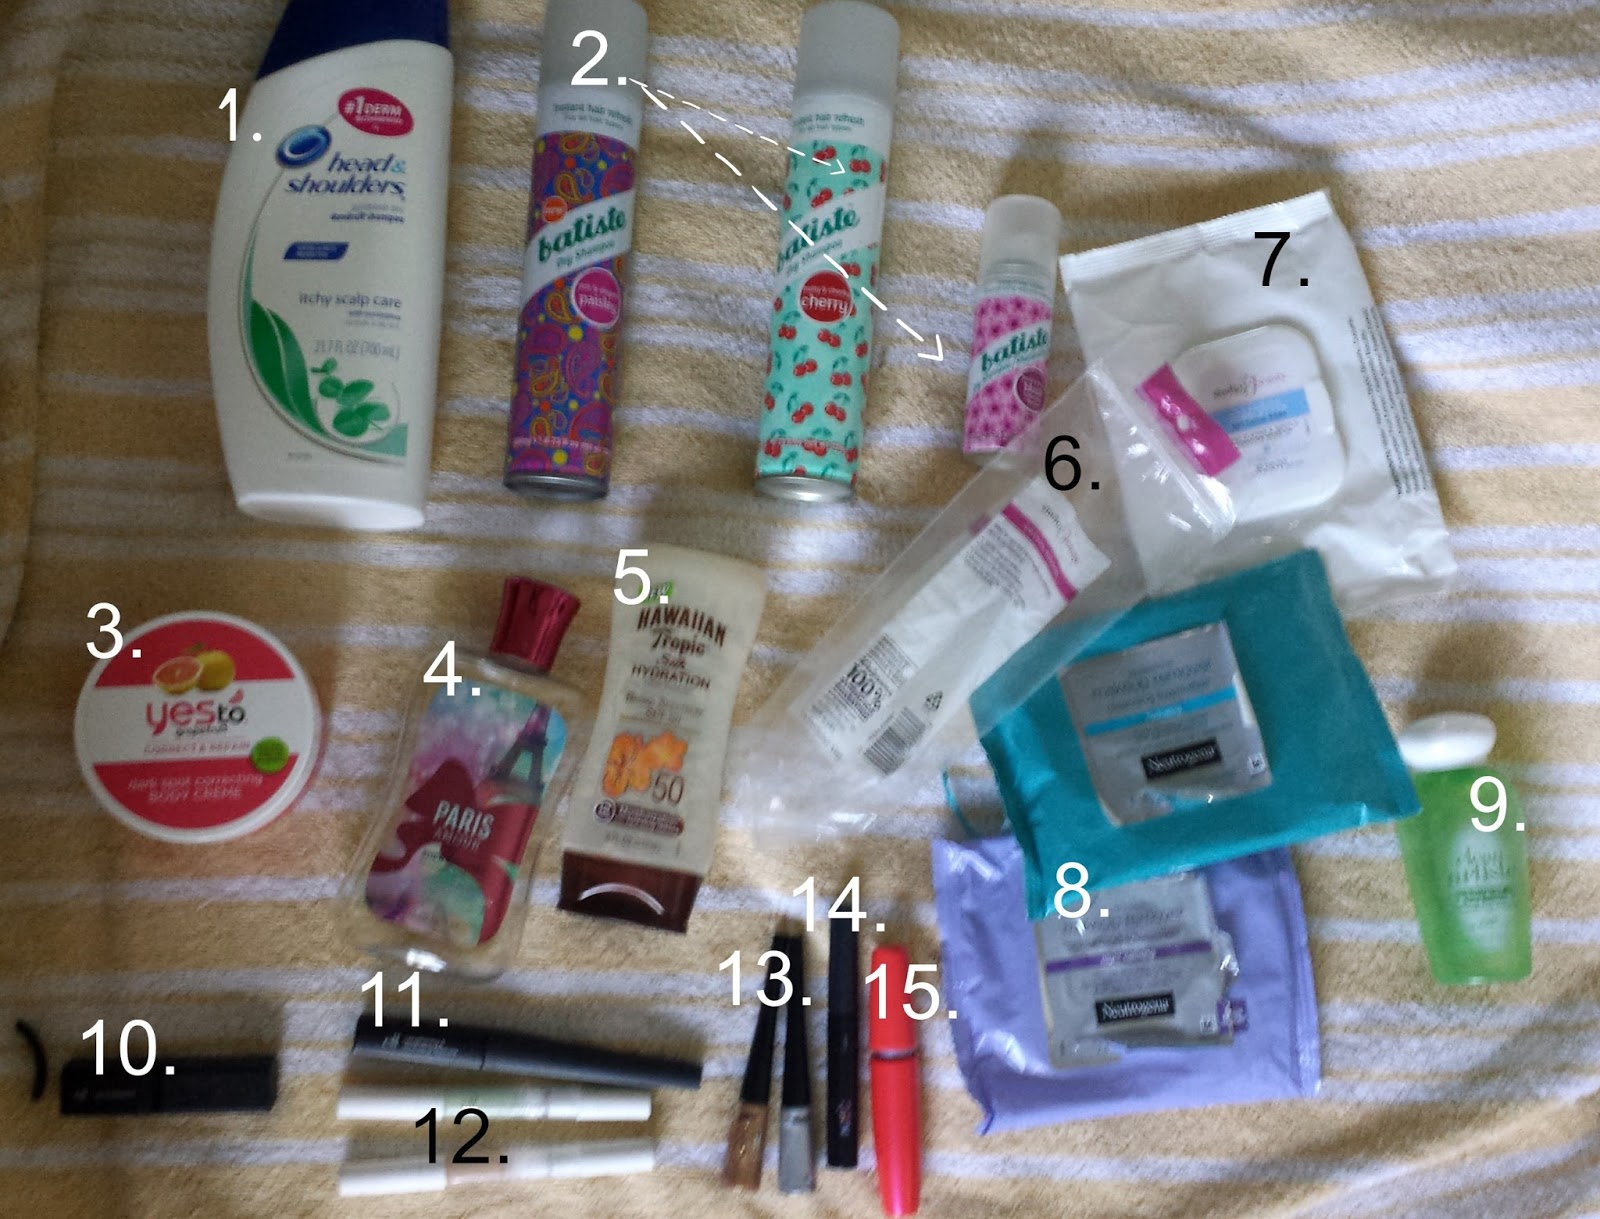 Empties June 2014, yes to grapefruit body creme, hawaiian tropics sunscreen, elf makeup, maybelline one by one mascara, batiste dry shampoo in cherry, floral and paisley, loreal waterproof eye makeup remover, neutrogena makeup wipes, paris amor bath and body works shower gel, head and shoulders shampoo